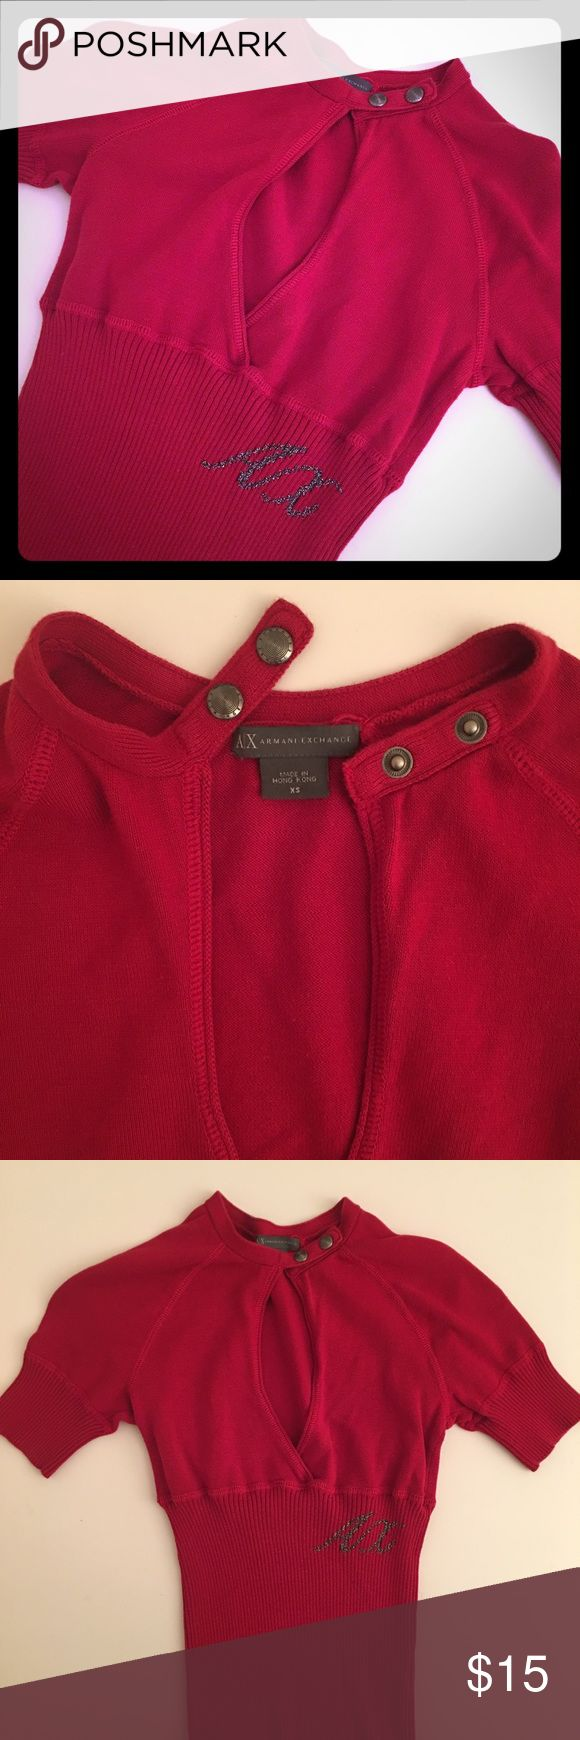 ARMANI EXCHANGE choker top ARMANI EXCHANGE red choker top, short sleeves with buttoned-up choker and AX logo on side. Gently used/excellent condition/no stains or defects. Make an offer! A/X Armani Exchange Tops